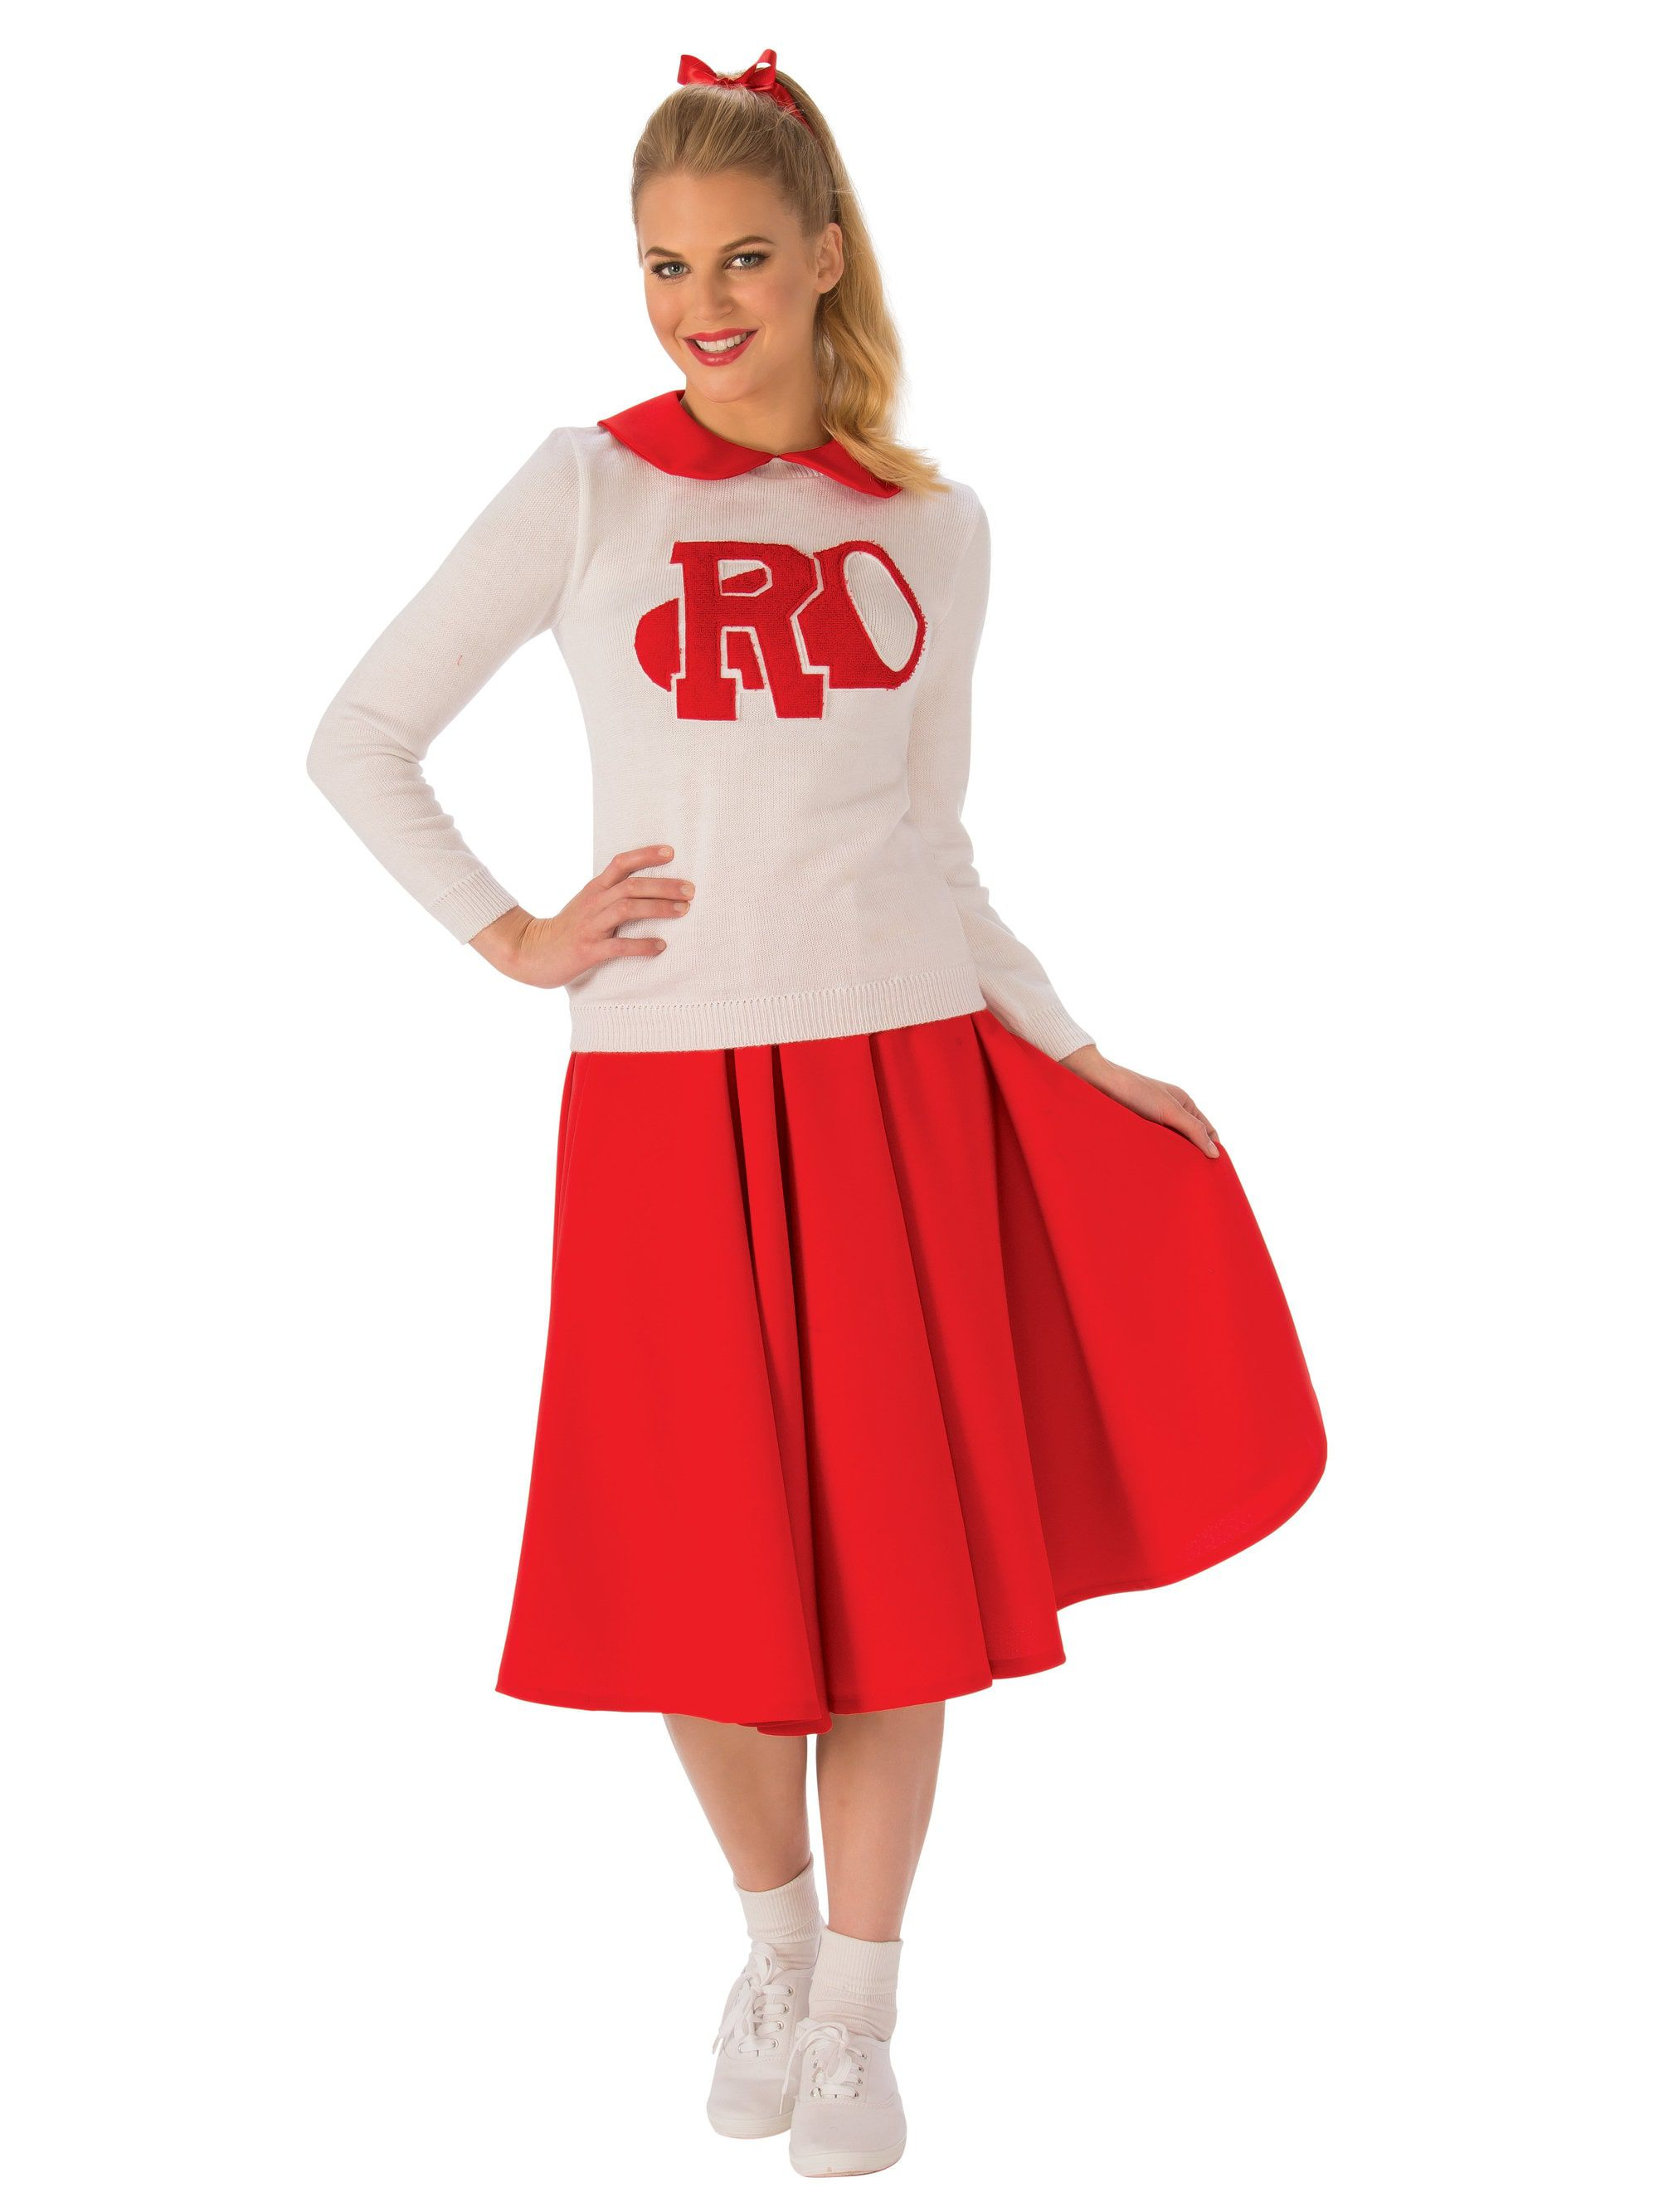 79e6ba6635d Grease Rydell High Cheerleader Costume For Adults - Womens Costumes ...